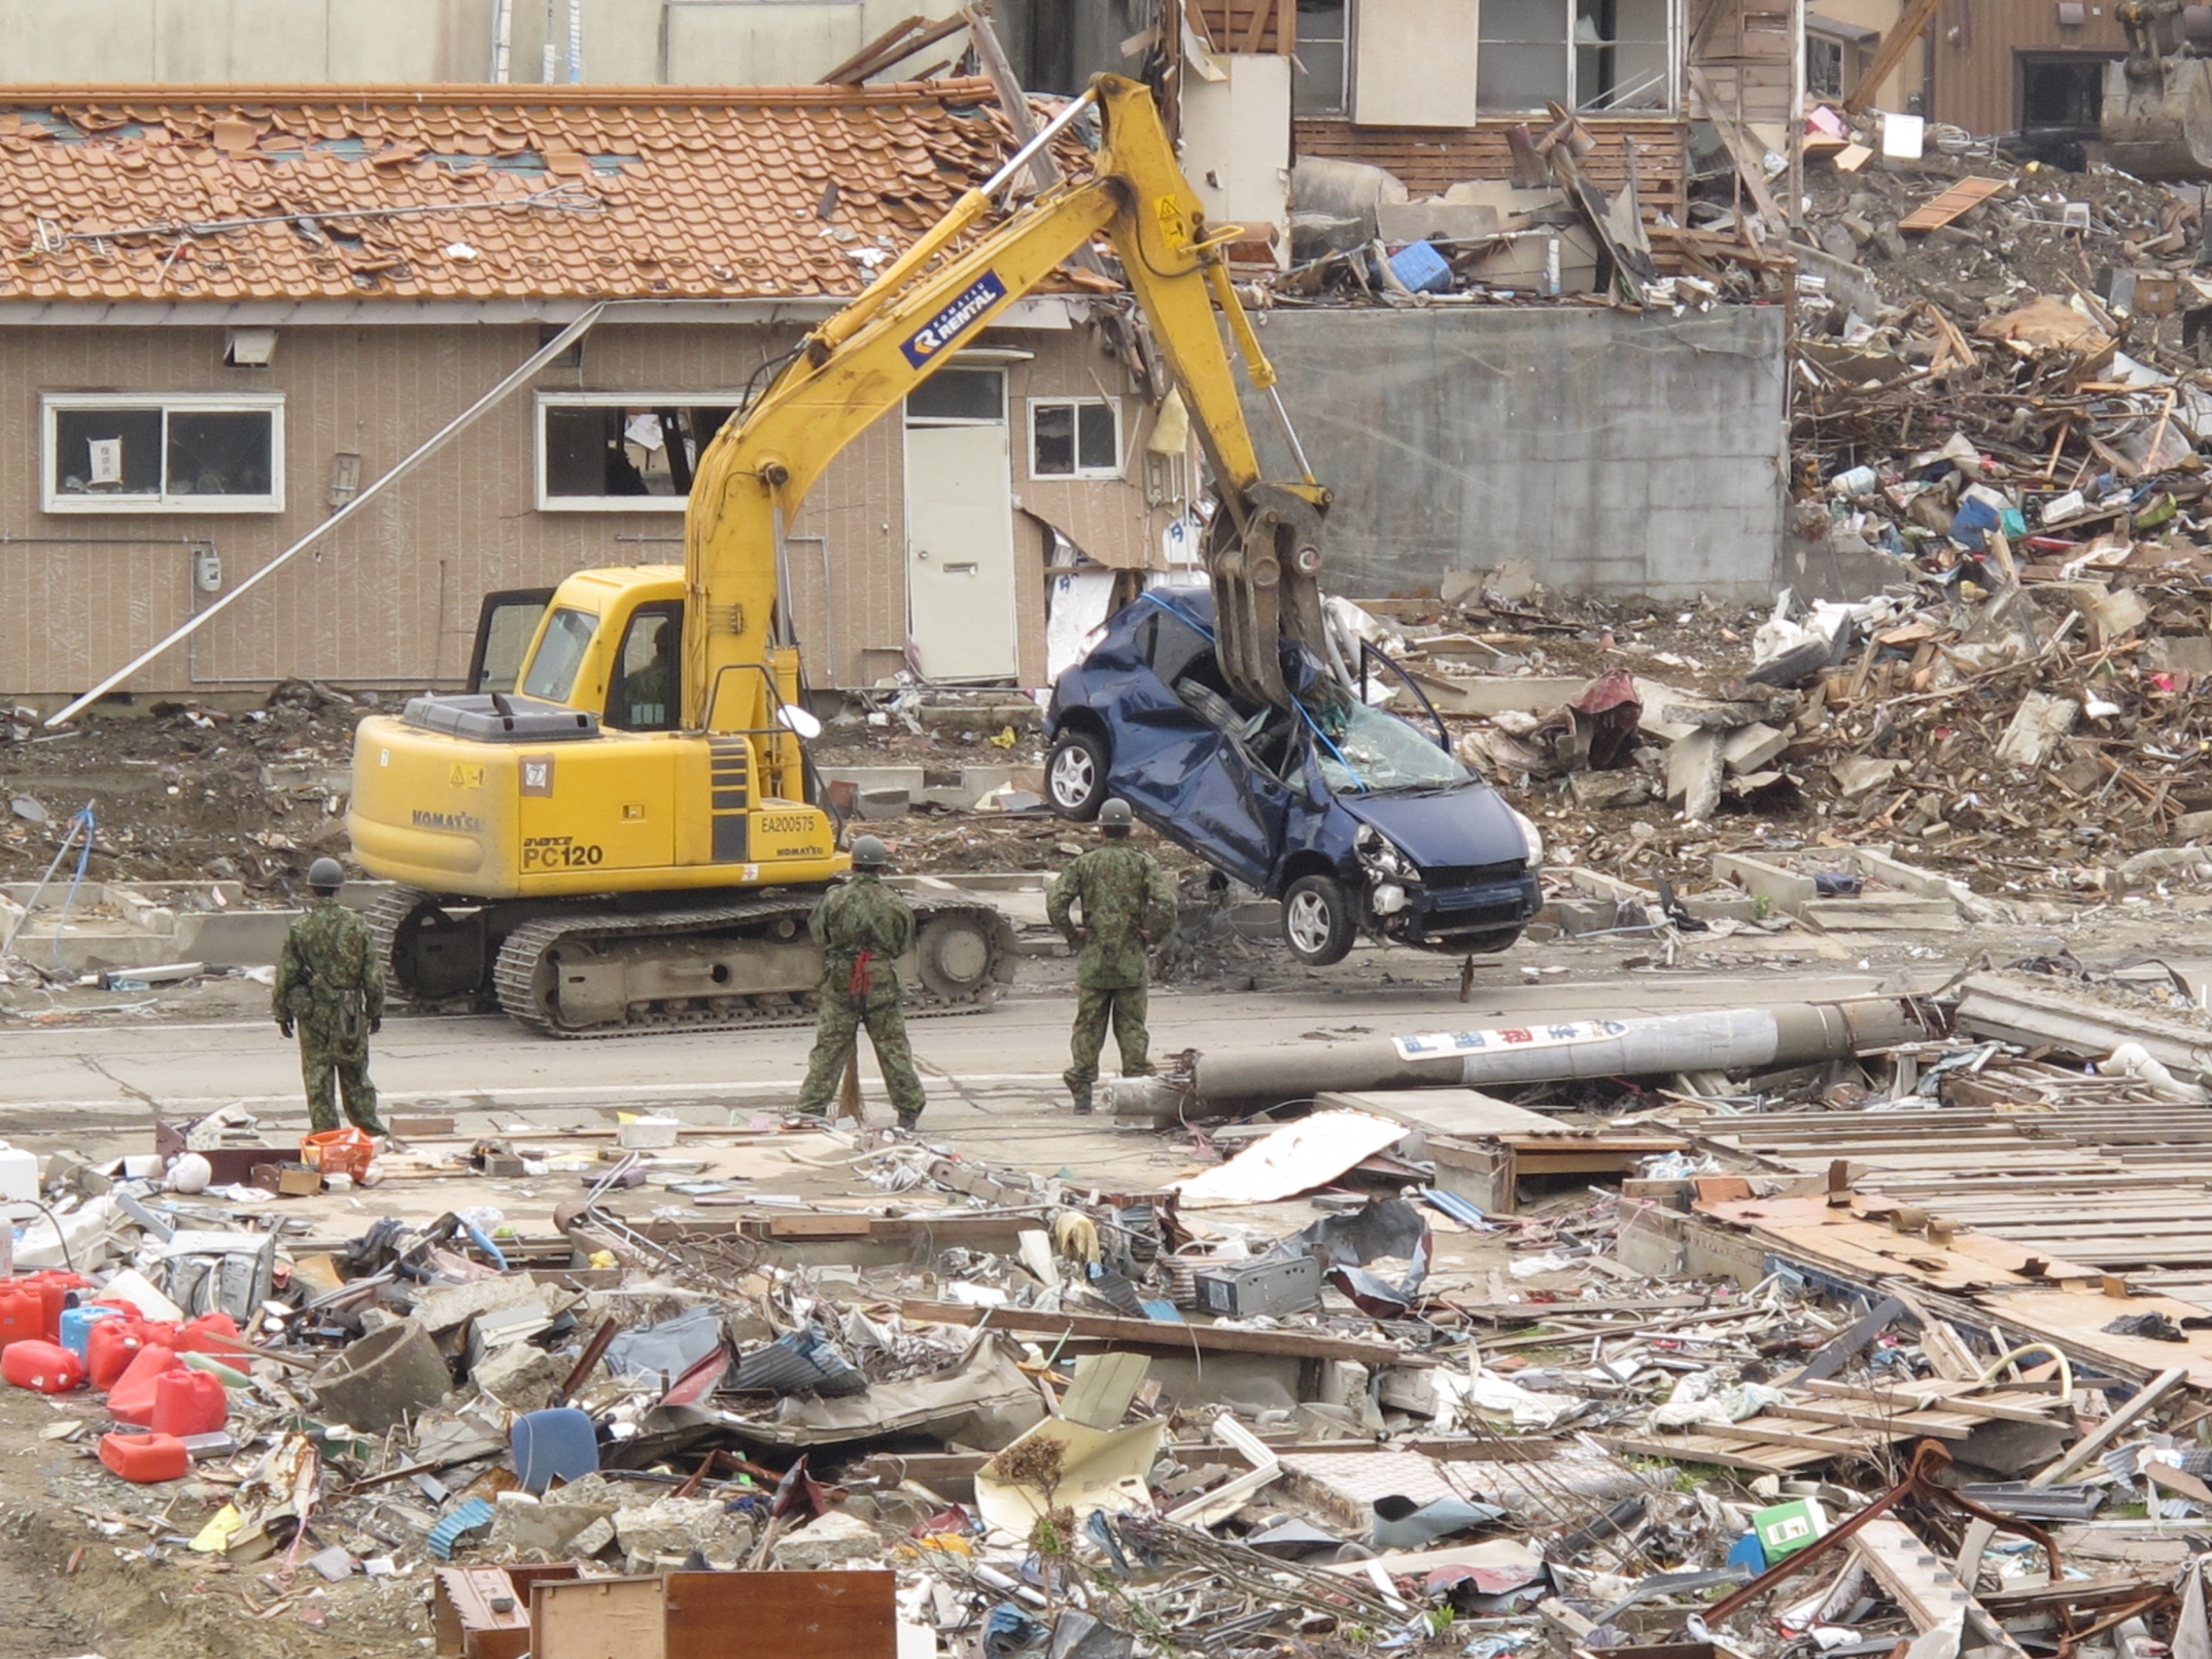 A yellow crane with a long arm is shown lifting up a destroyed blue car with damaged buildings all over.